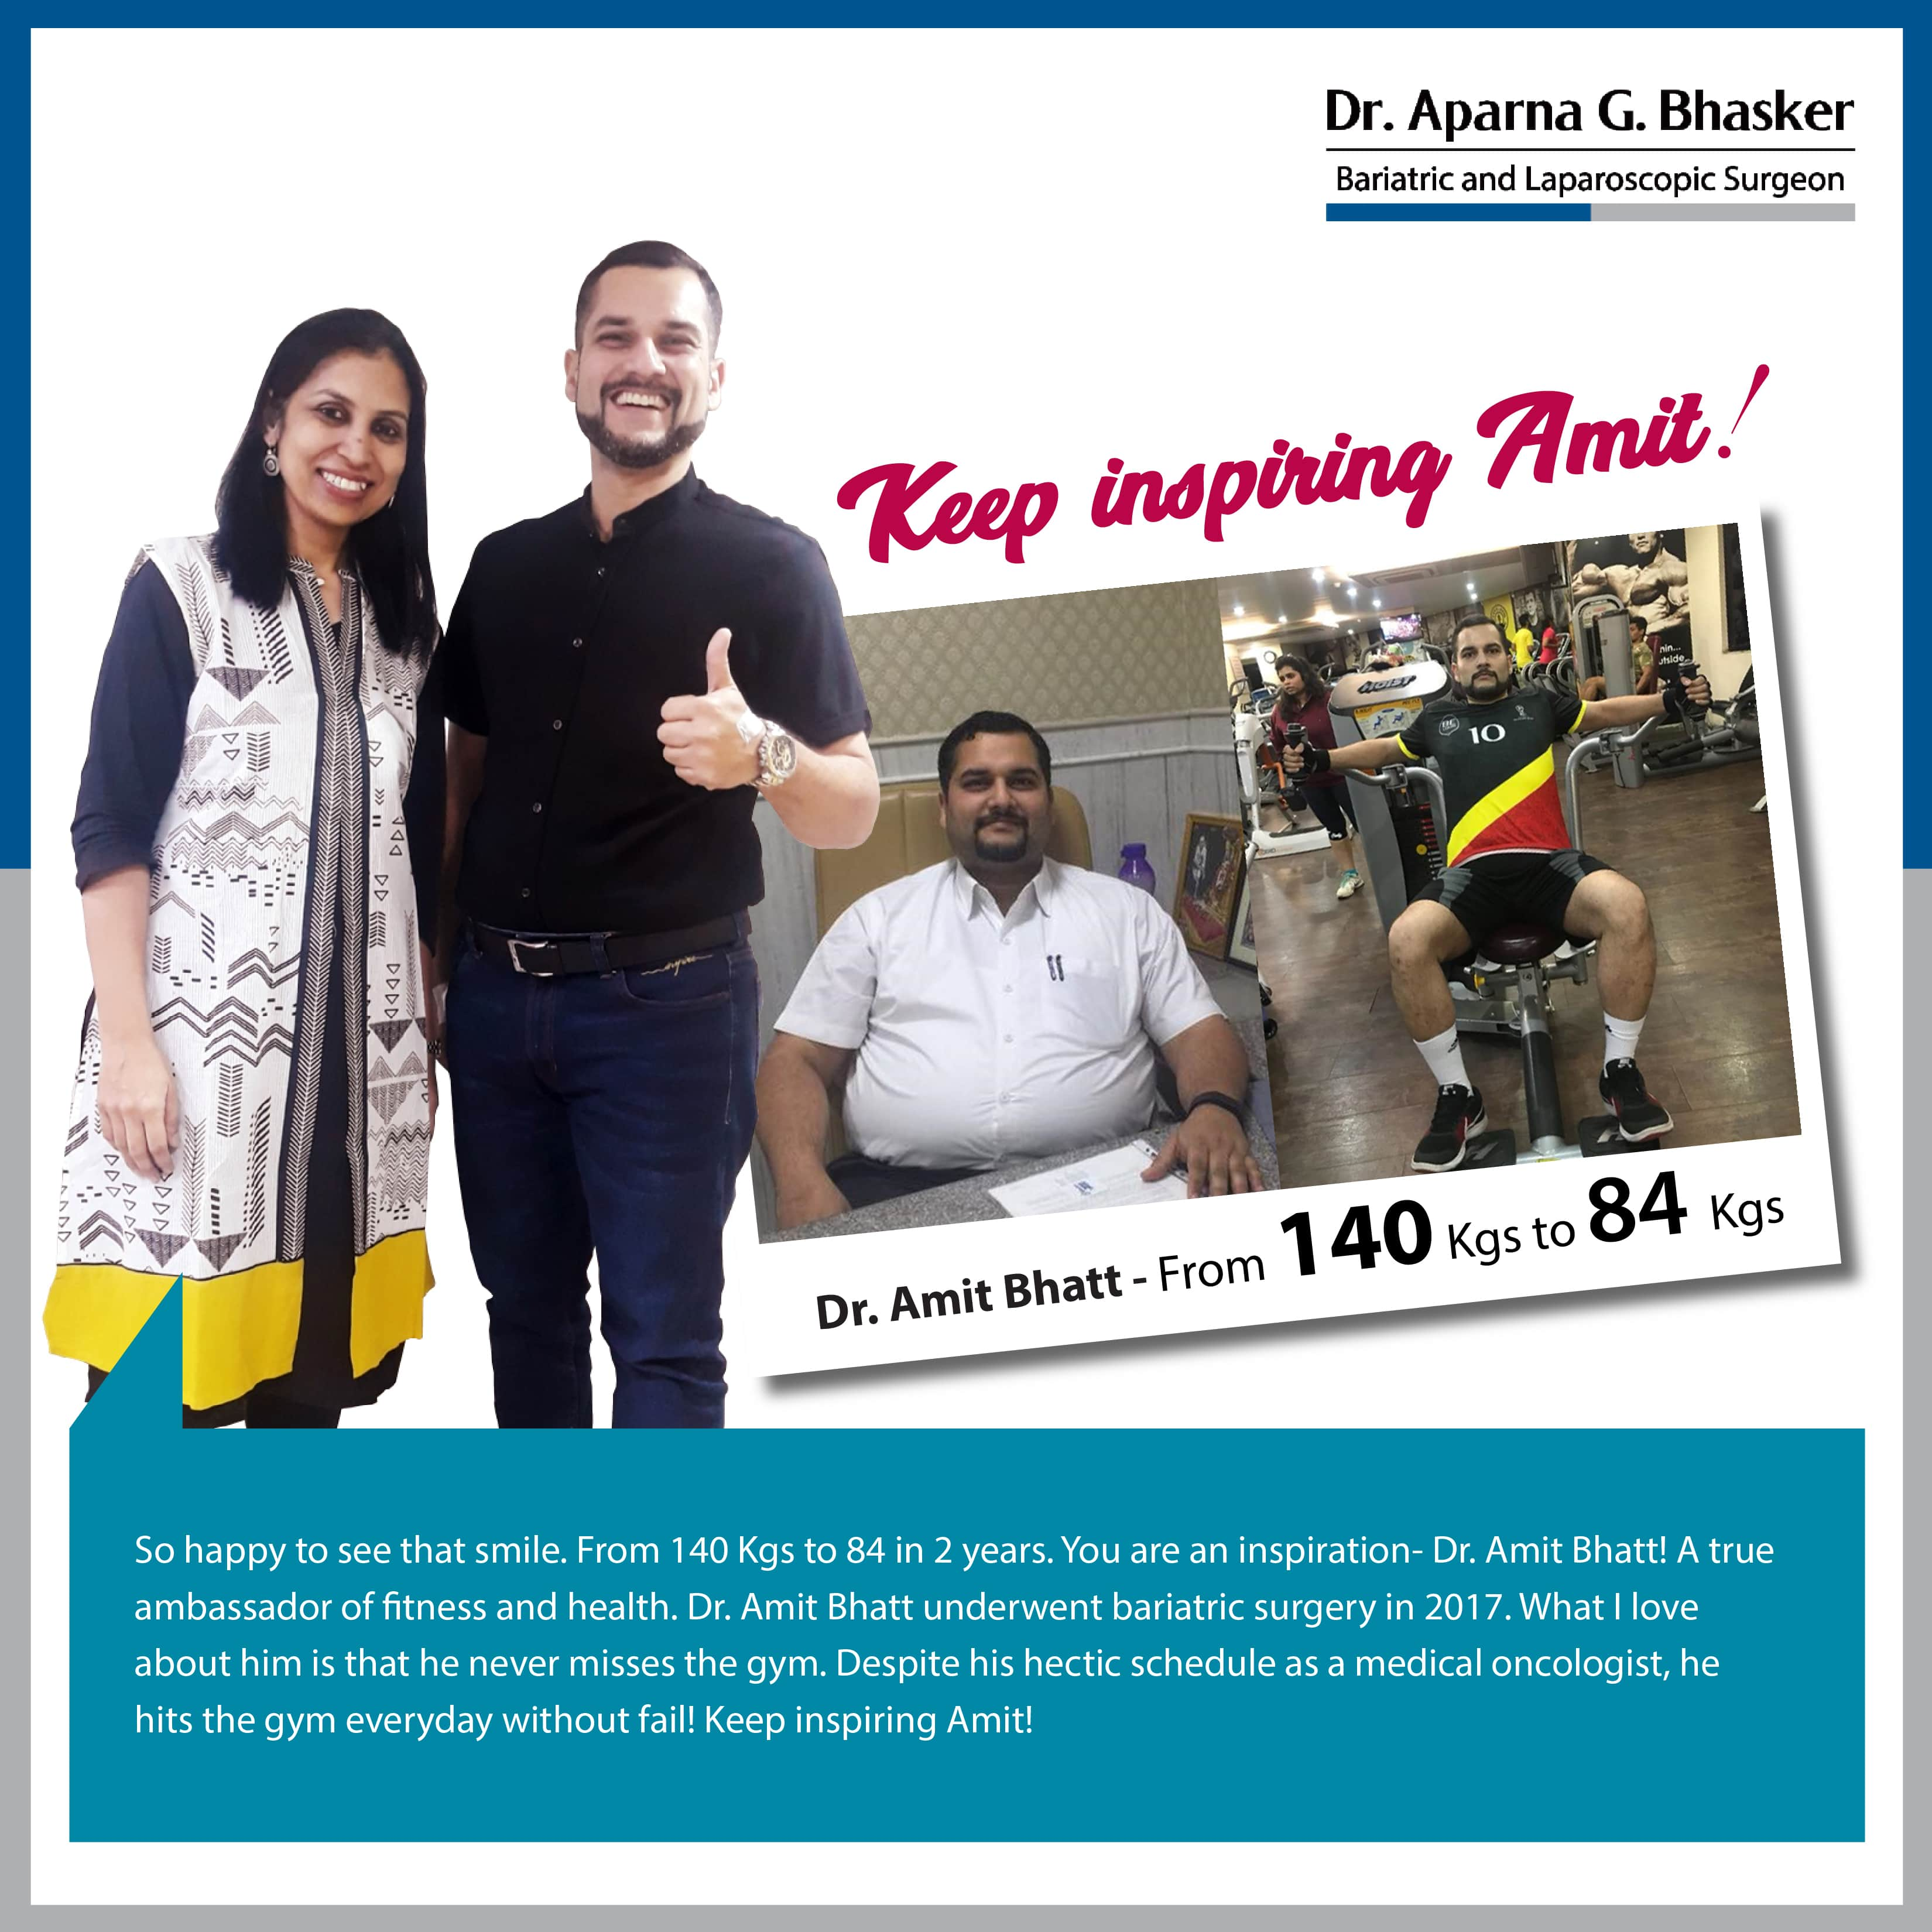 best Roux-en Y Gastric Bypass bariatric surgery and weight loss surgery cost in mumbai india before after photos (3)